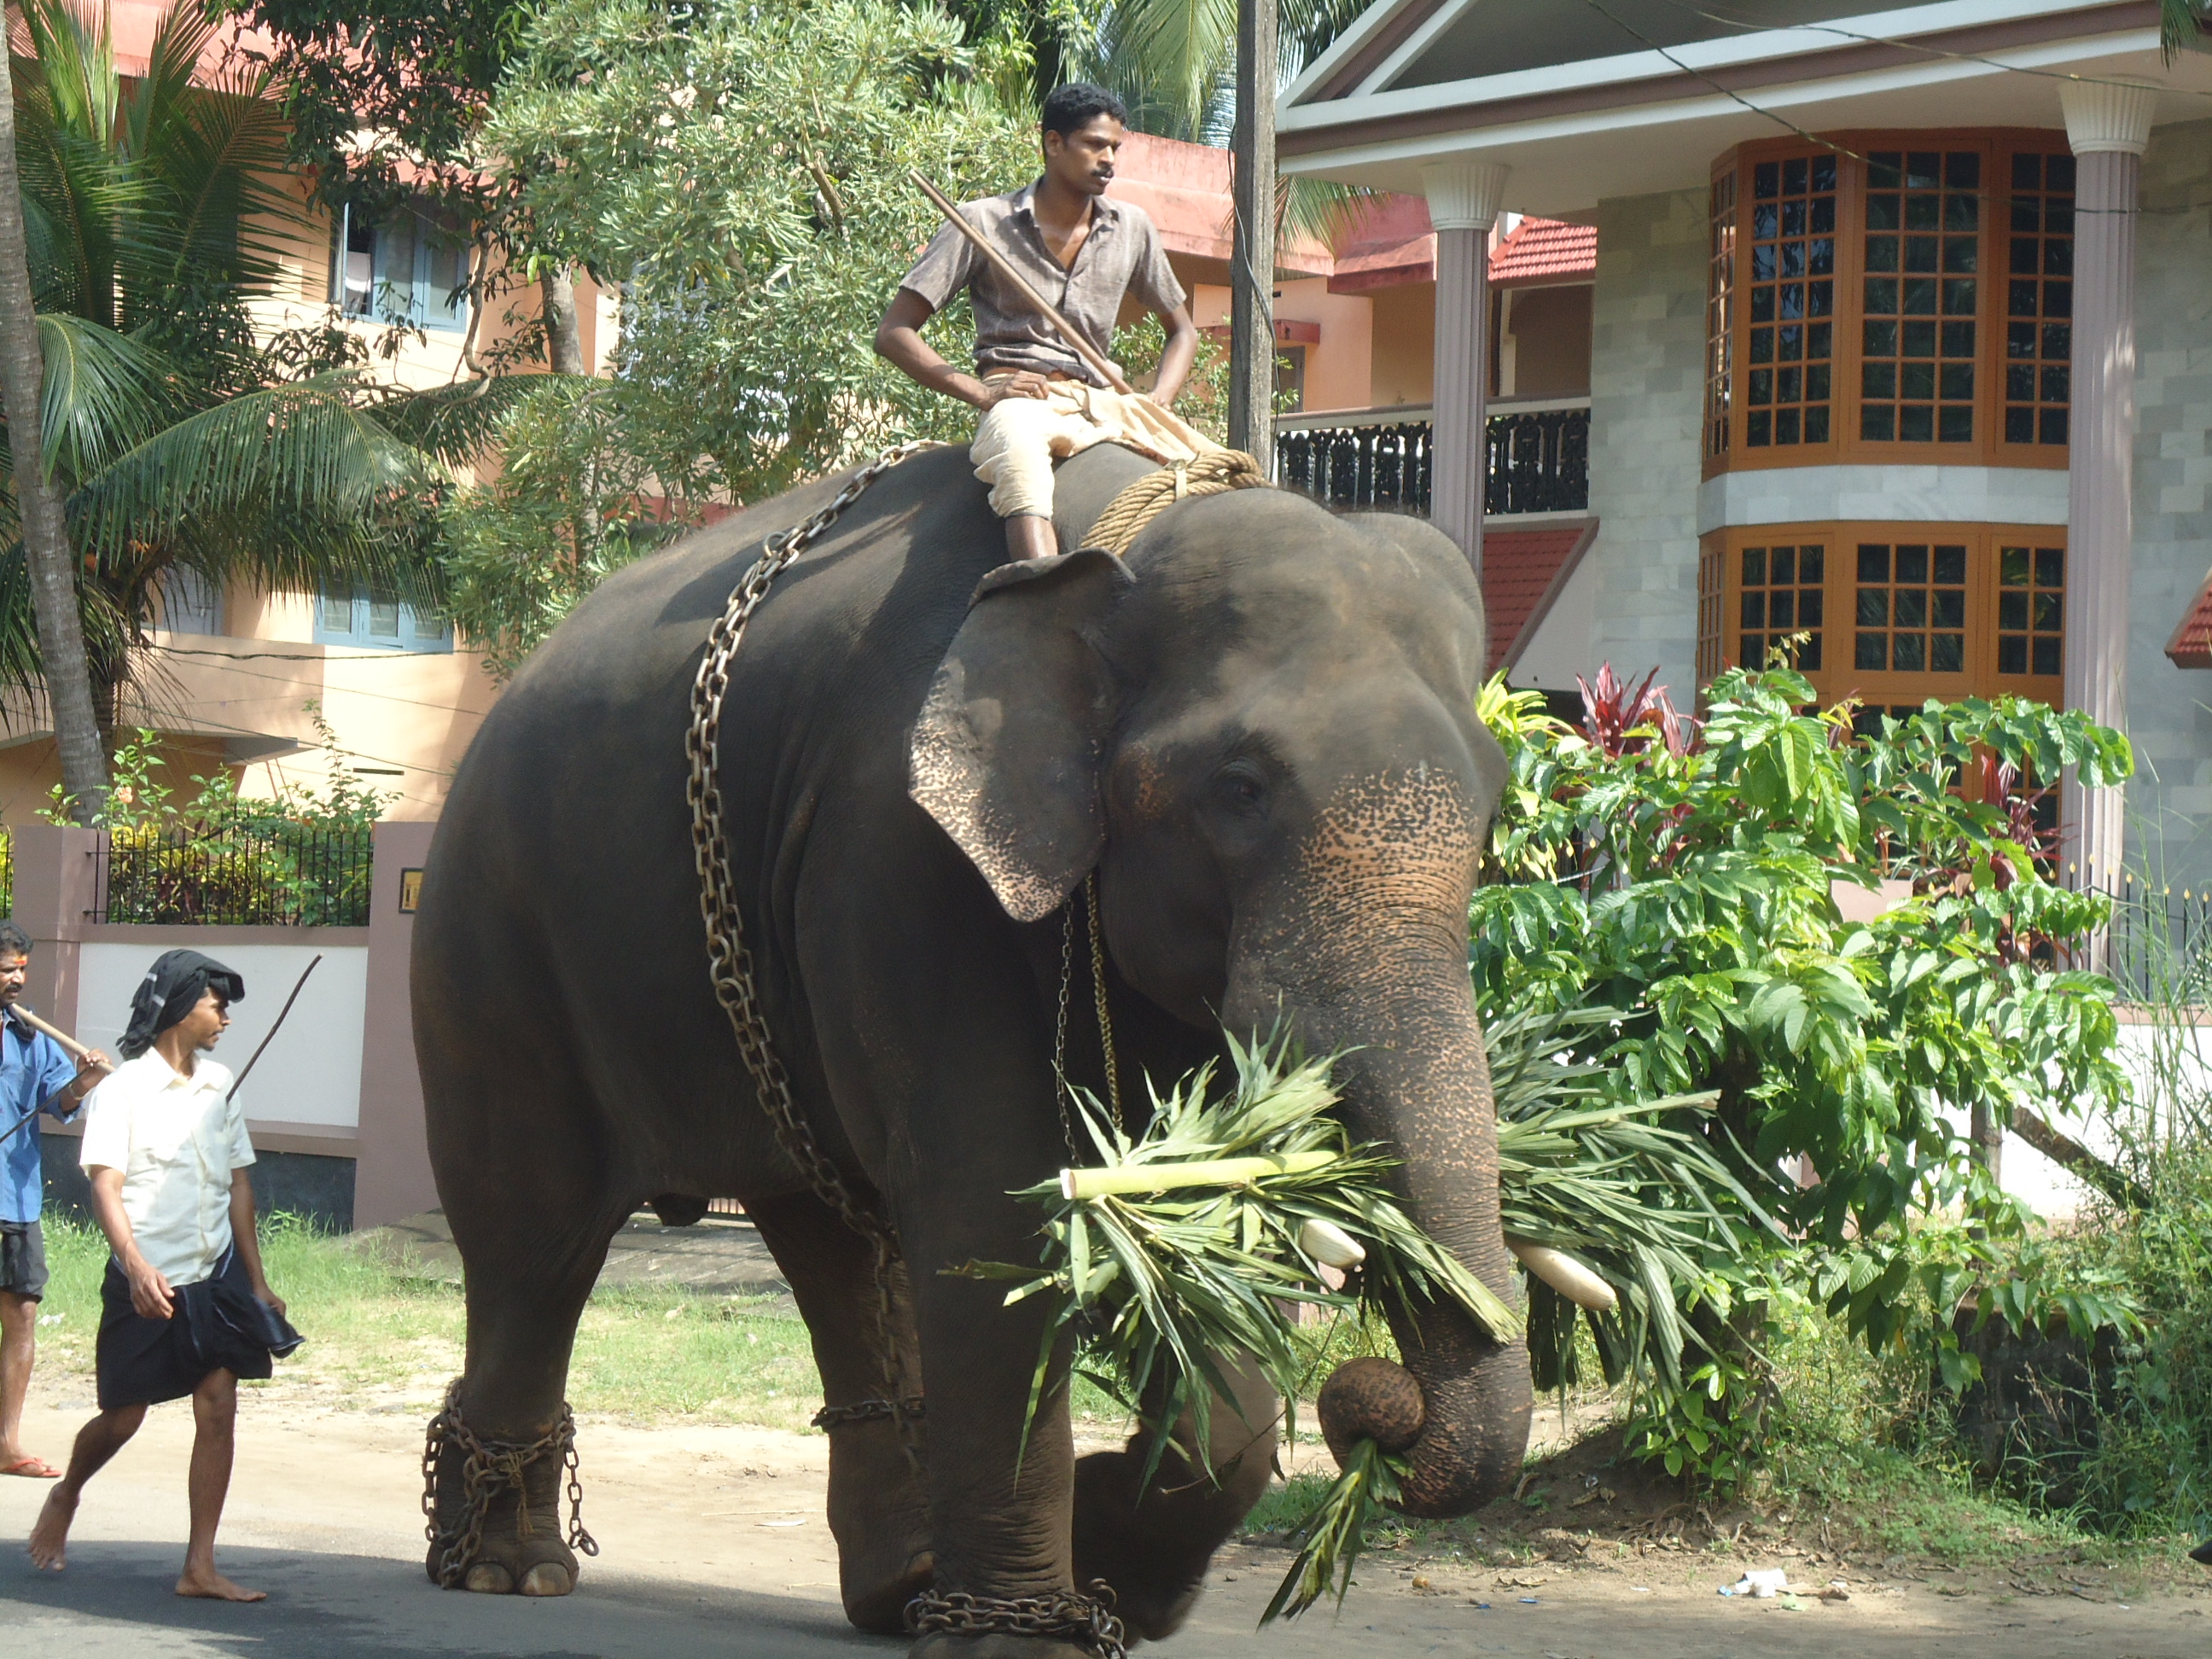 File:Elephant in Kerala with Pappan.JPG - Wikimedia Commons